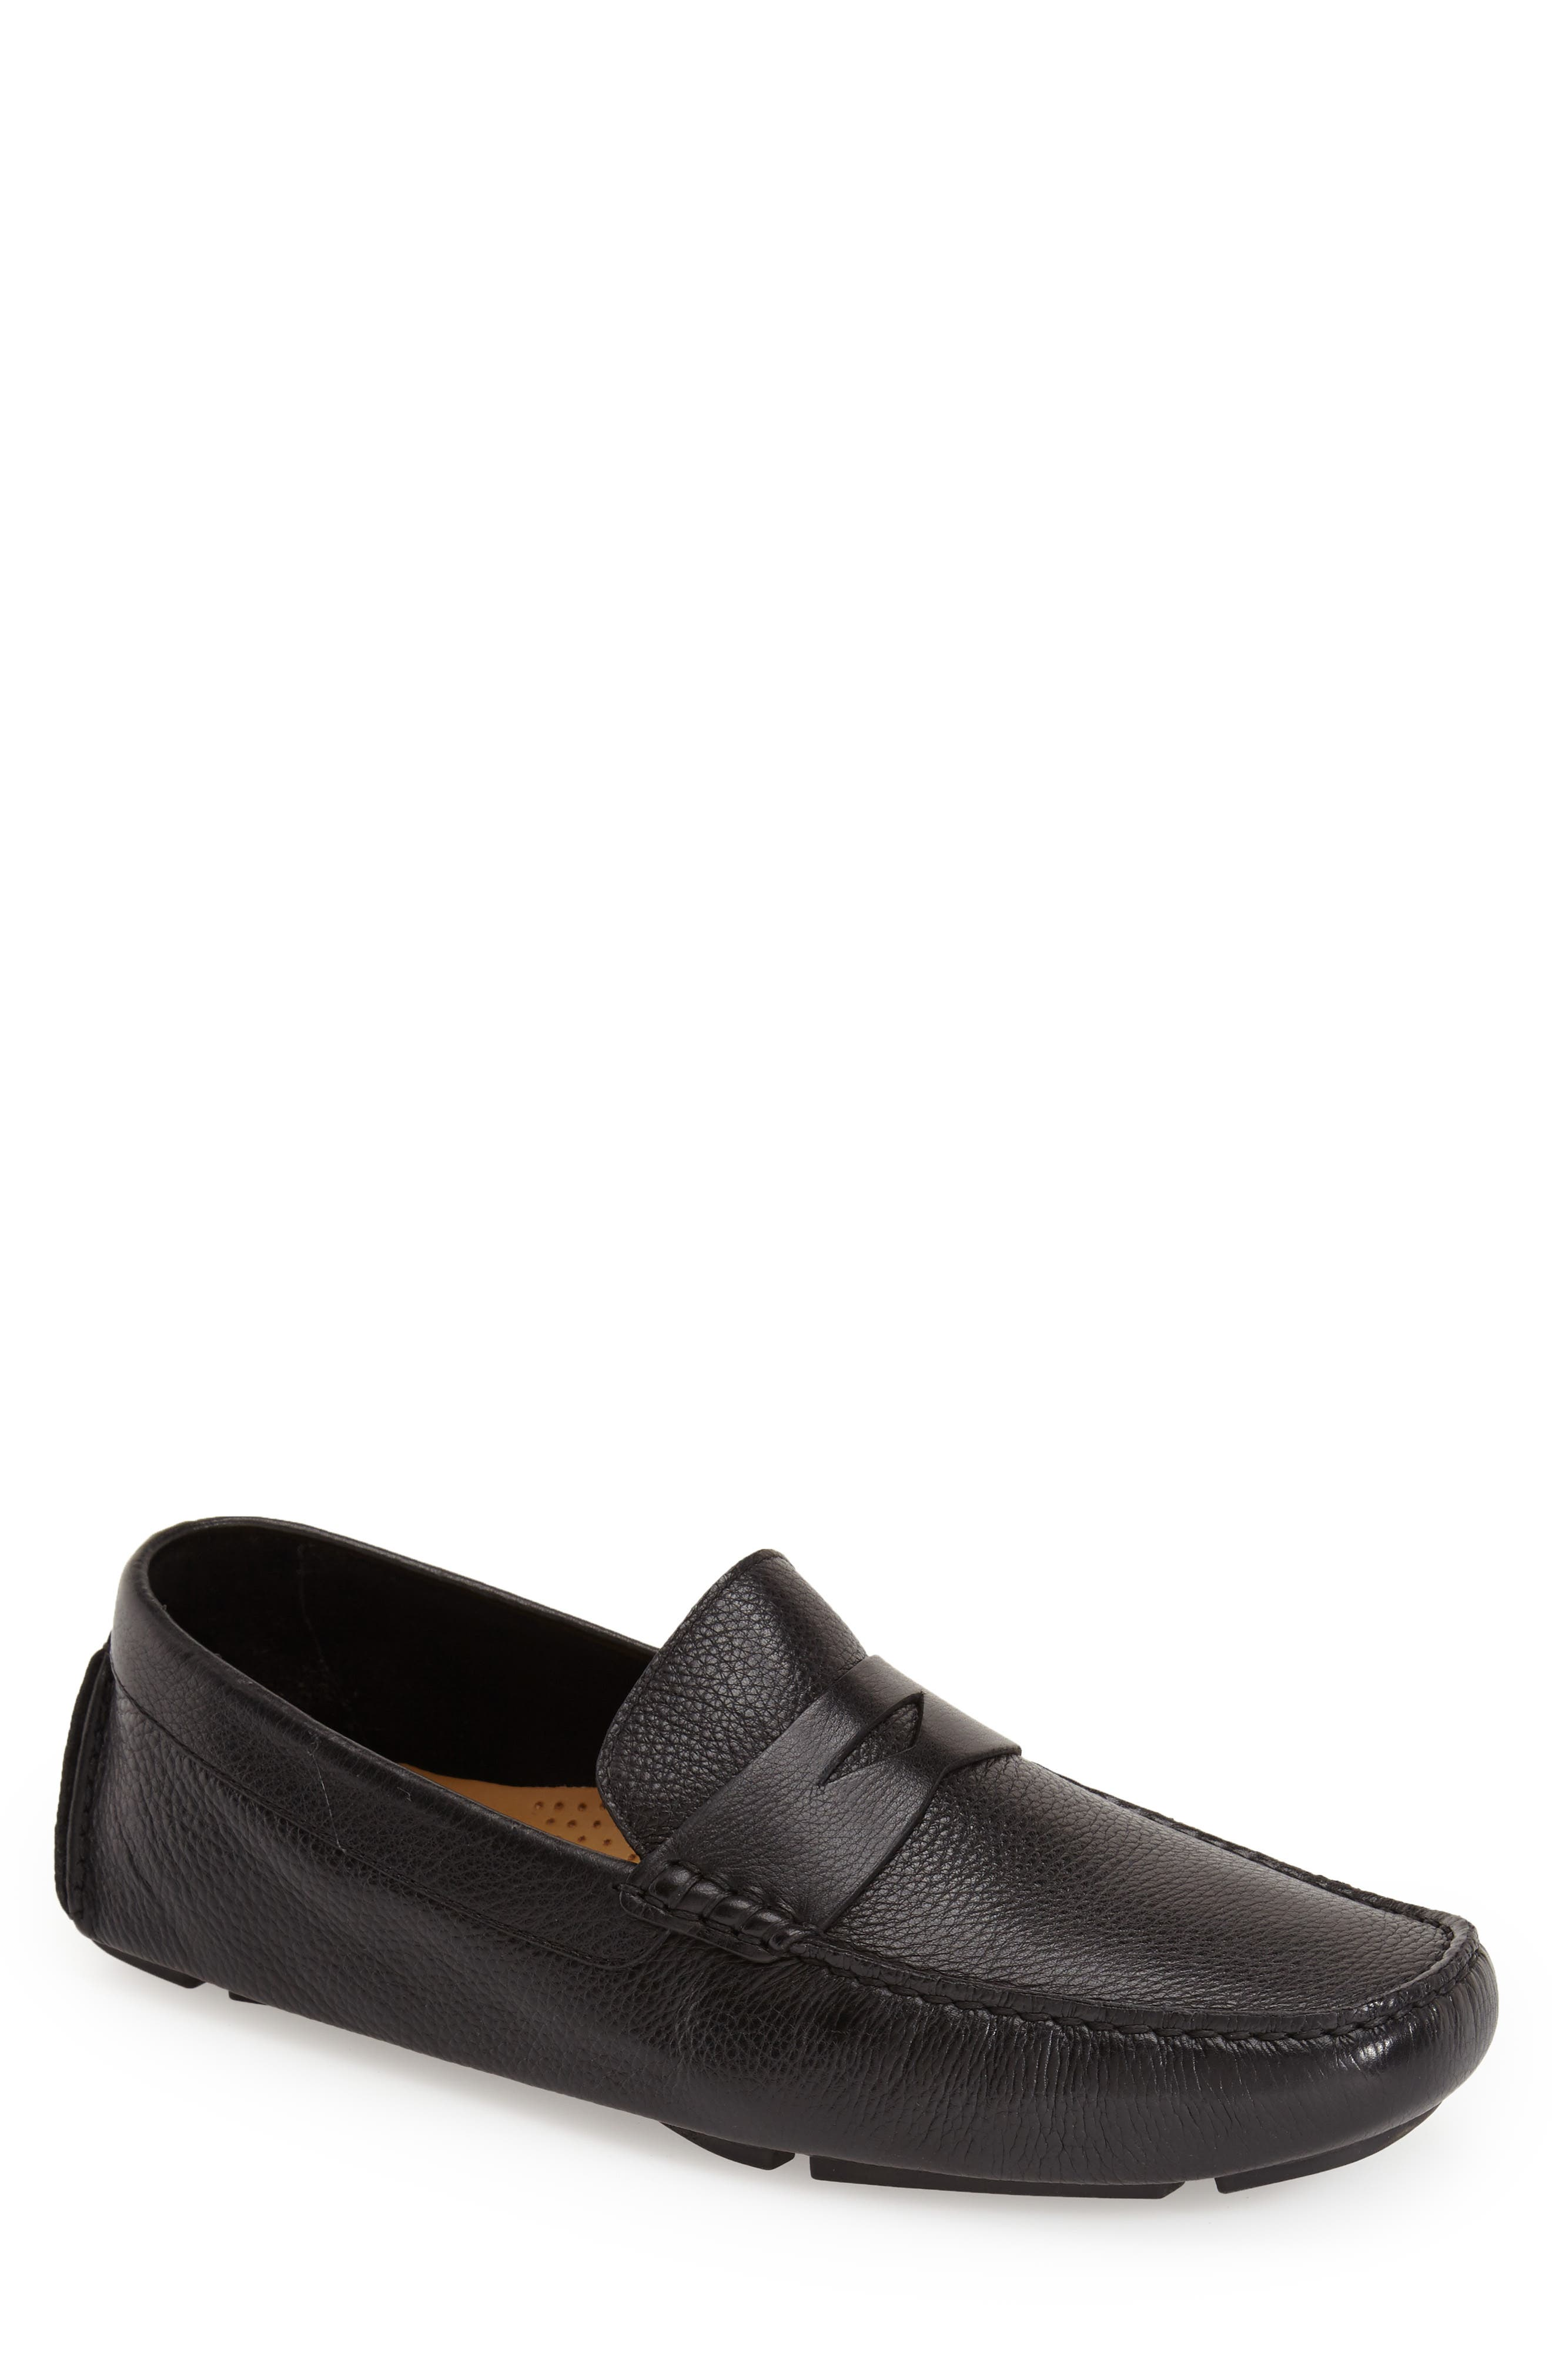 COLE HAAN, 'Howland' Penny Loafer, Alternate thumbnail 9, color, BLACK TUMBLED